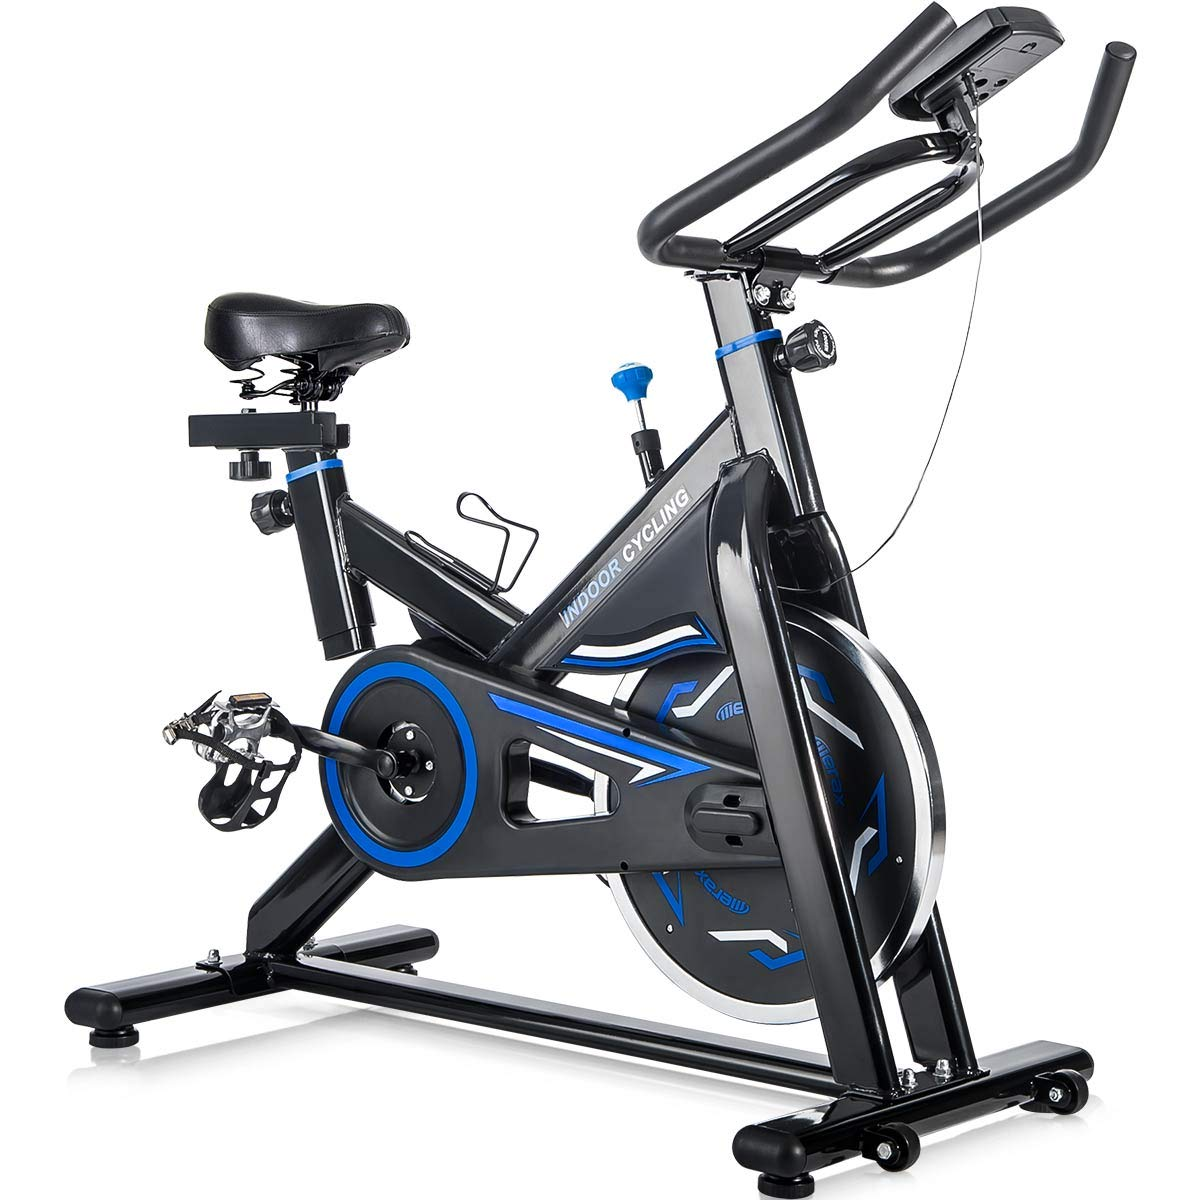 Merax Deluxe Indoor Cycling Bike Cycle Trainer Exercise Bicycle (Black with Blue) by Merax (Image #1)